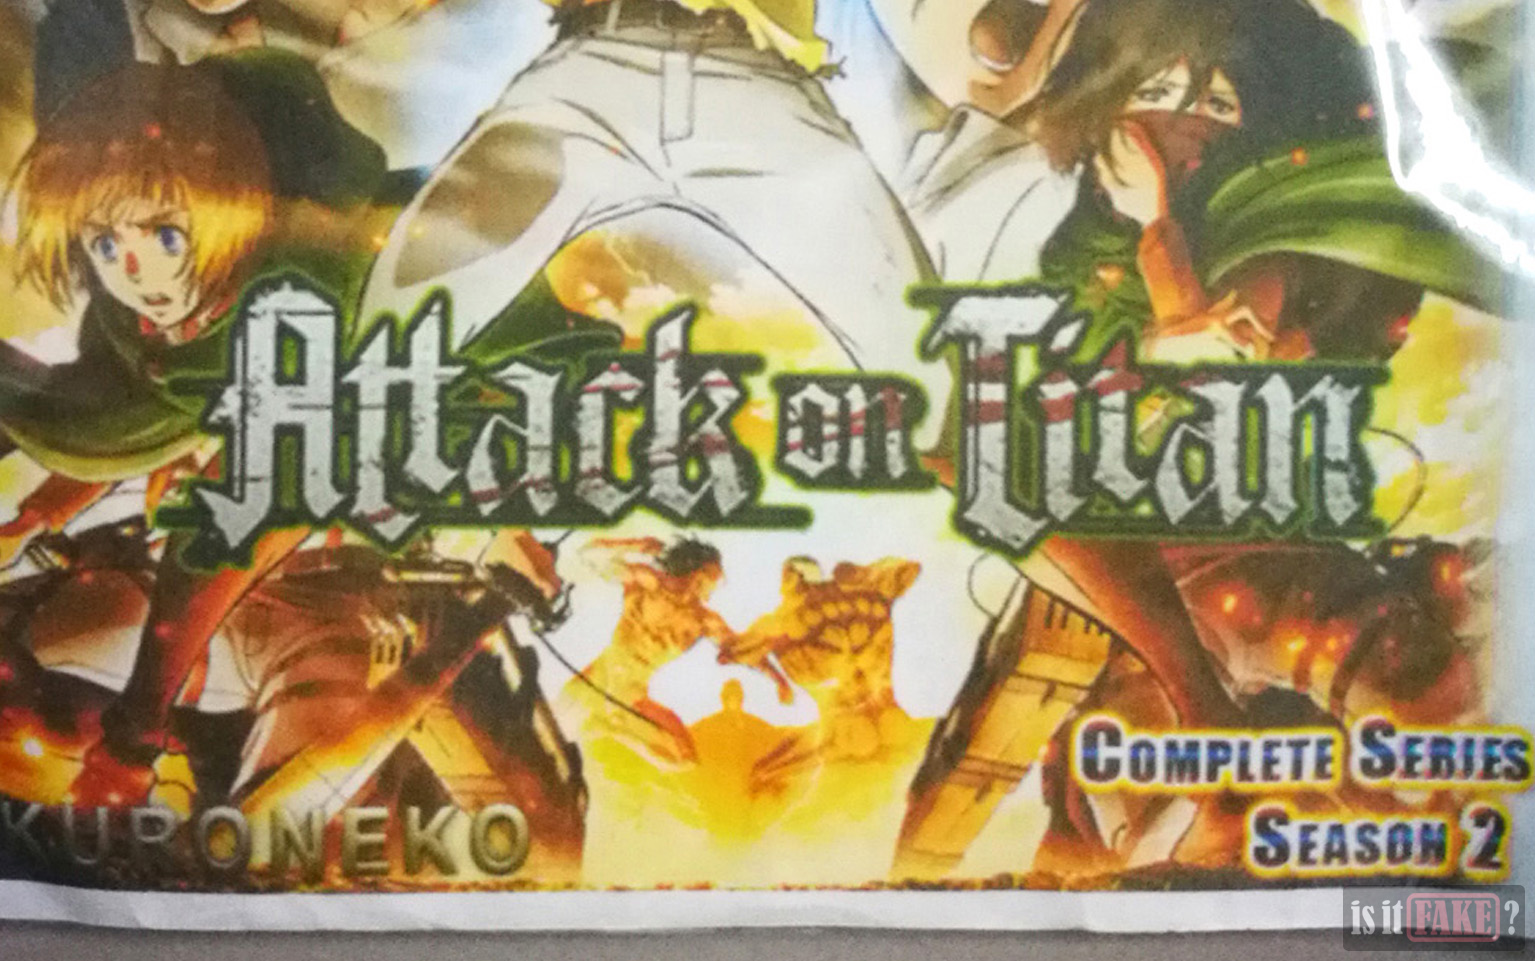 A close-up of the Attack on Titan logo on the front.